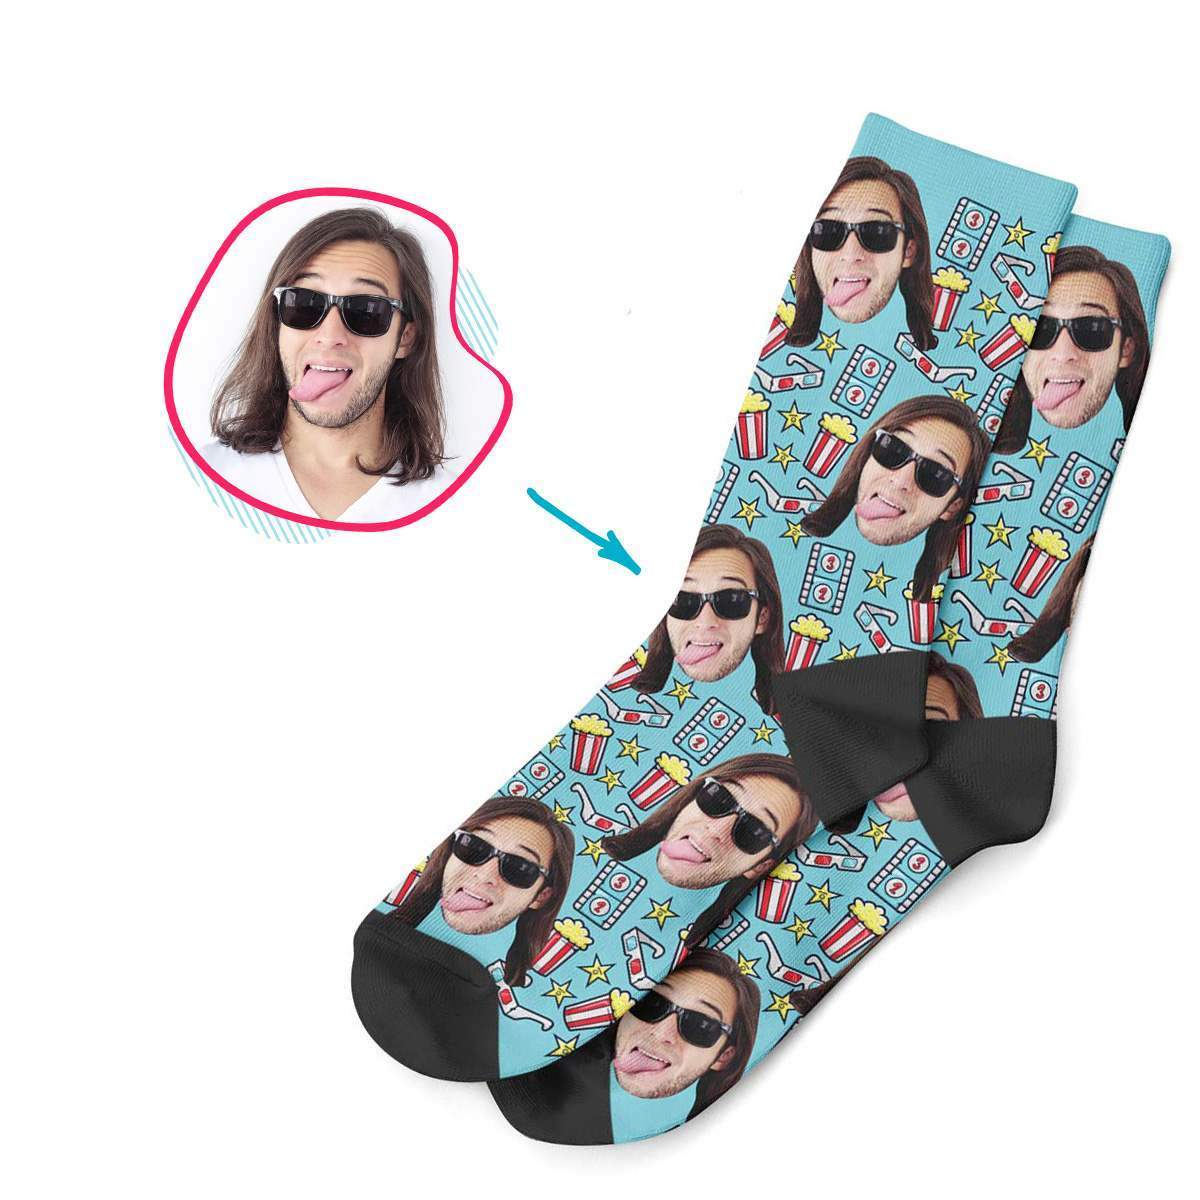 blue Movie socks personalized with photo of face printed on them